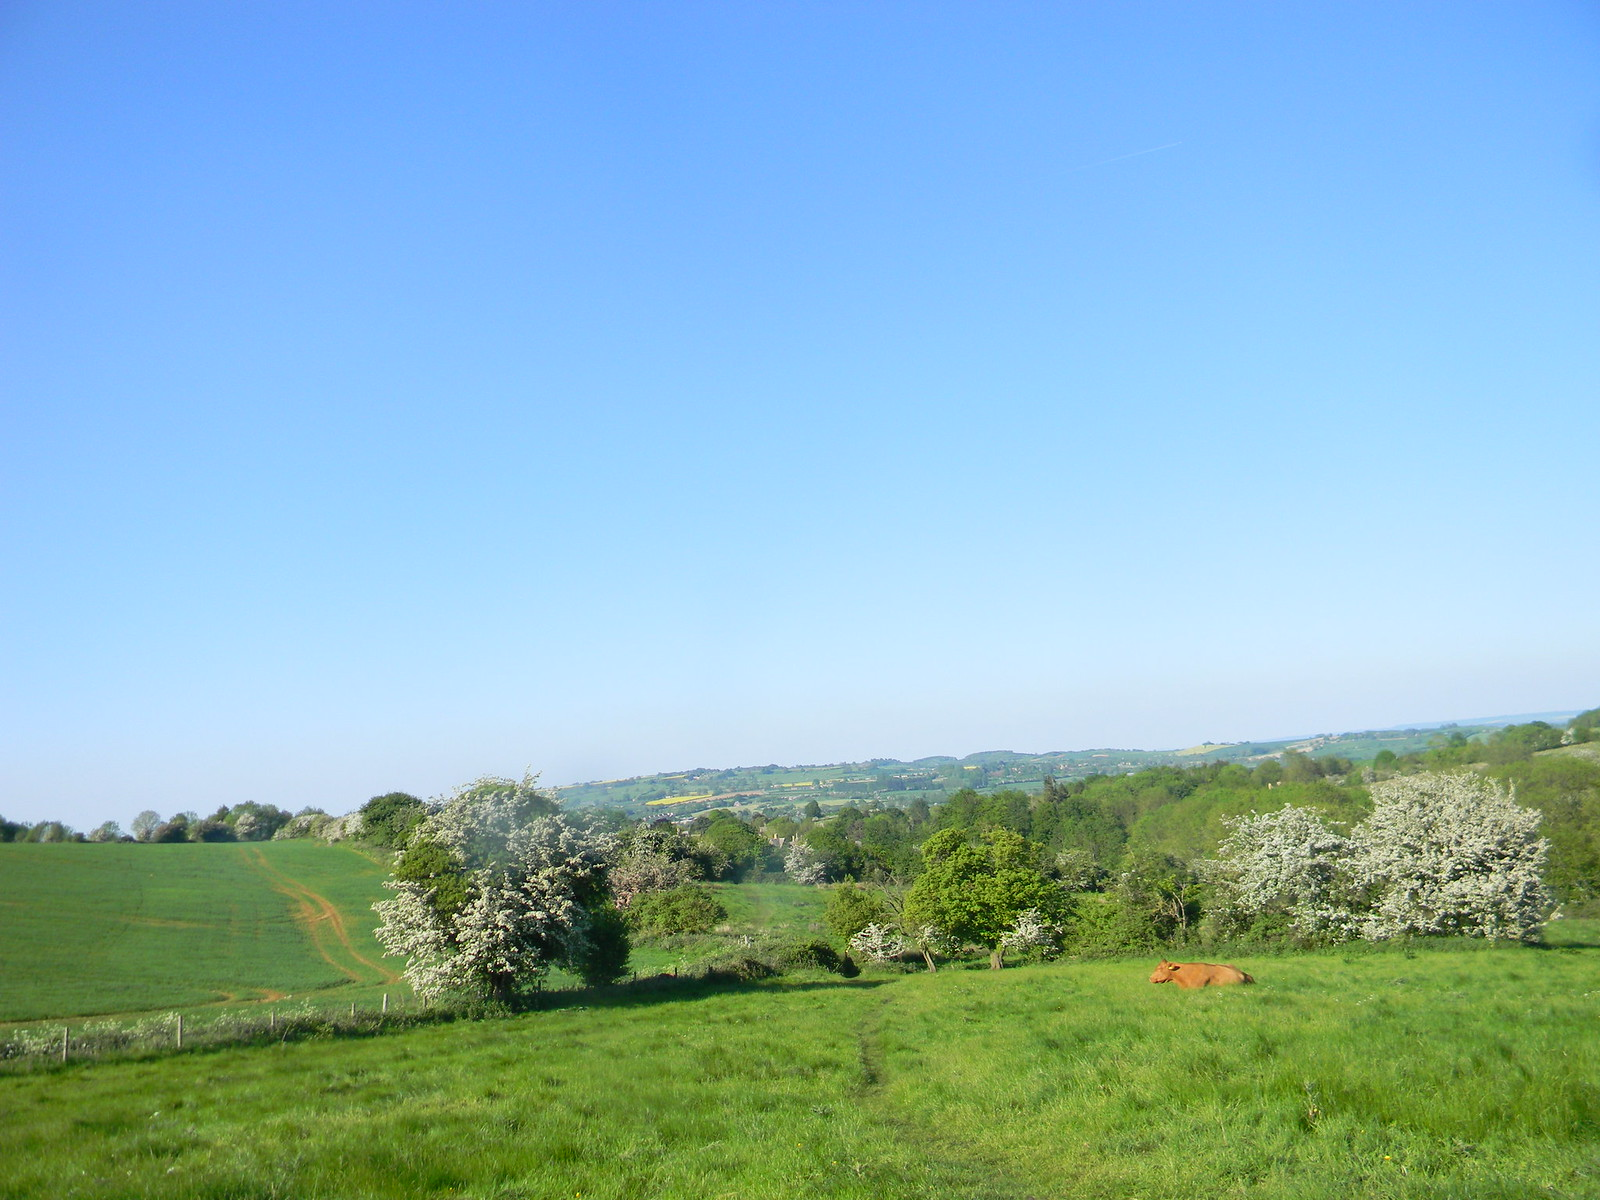 Cow in a field with a view Moreton-in-Marsh Circular